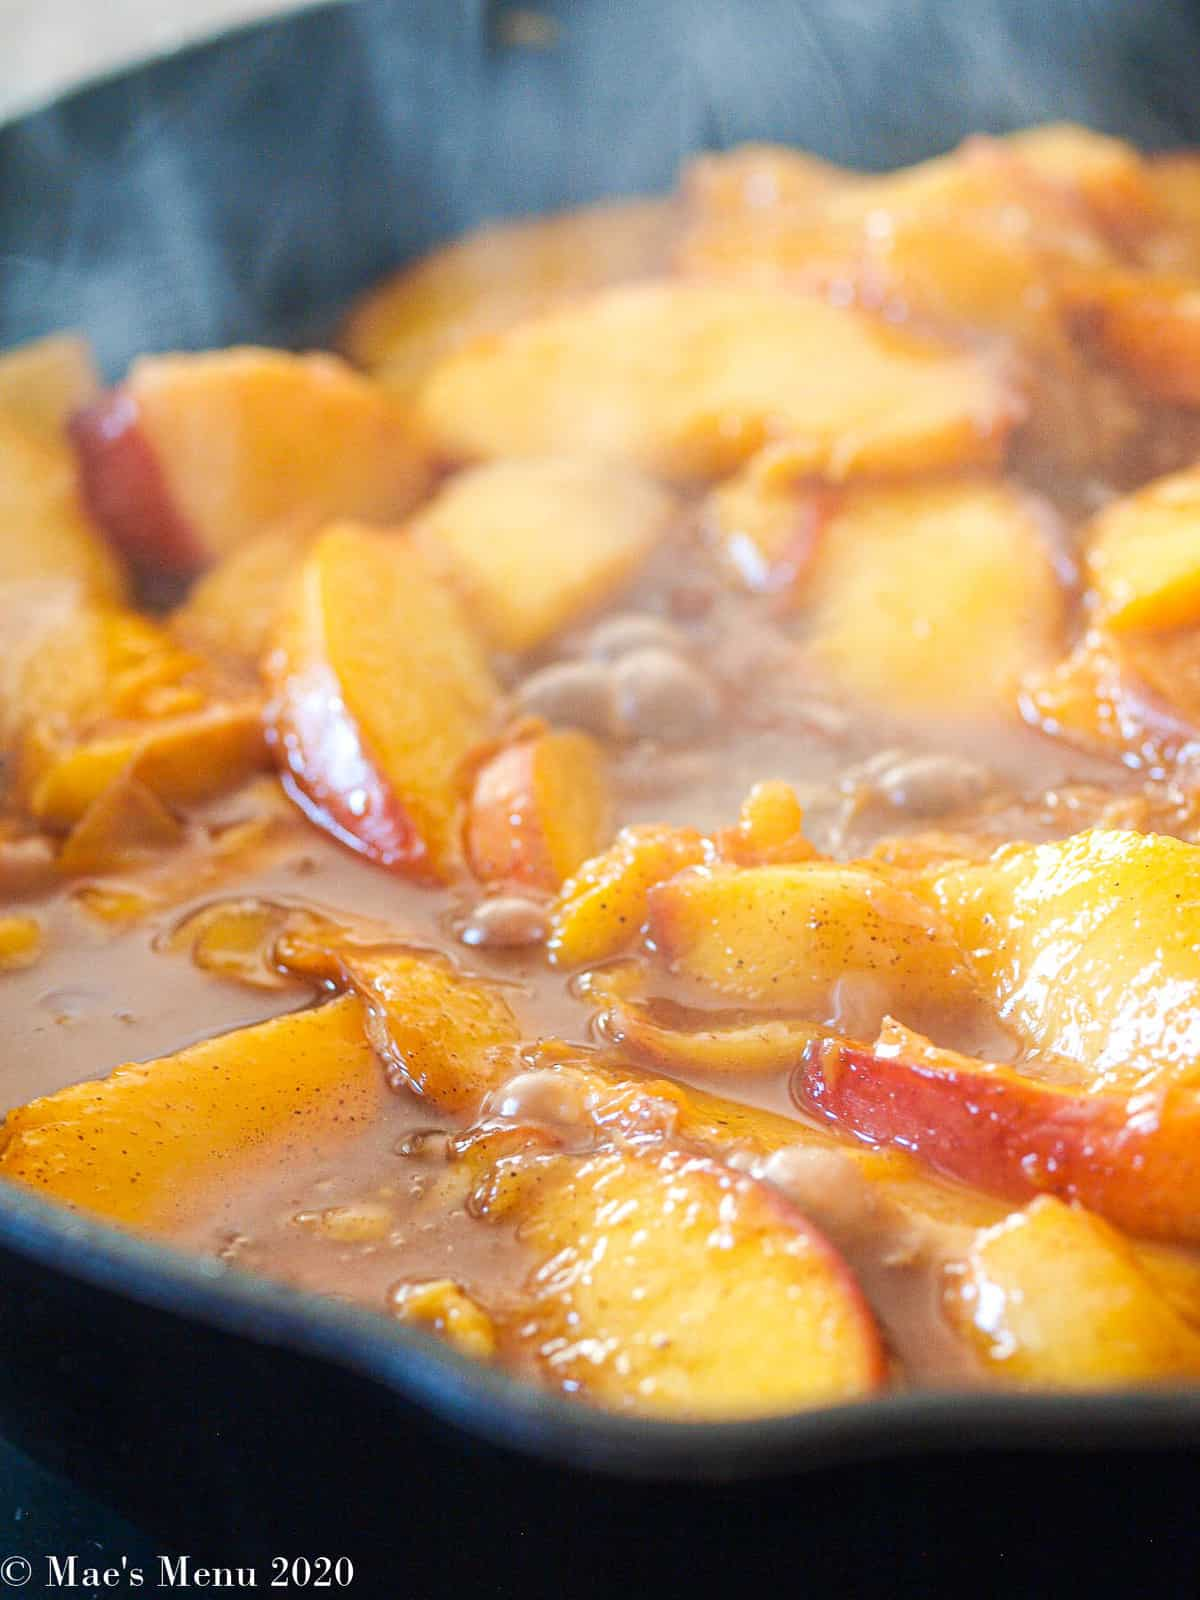 An up-close shot of peaches cooked down and bubbling.